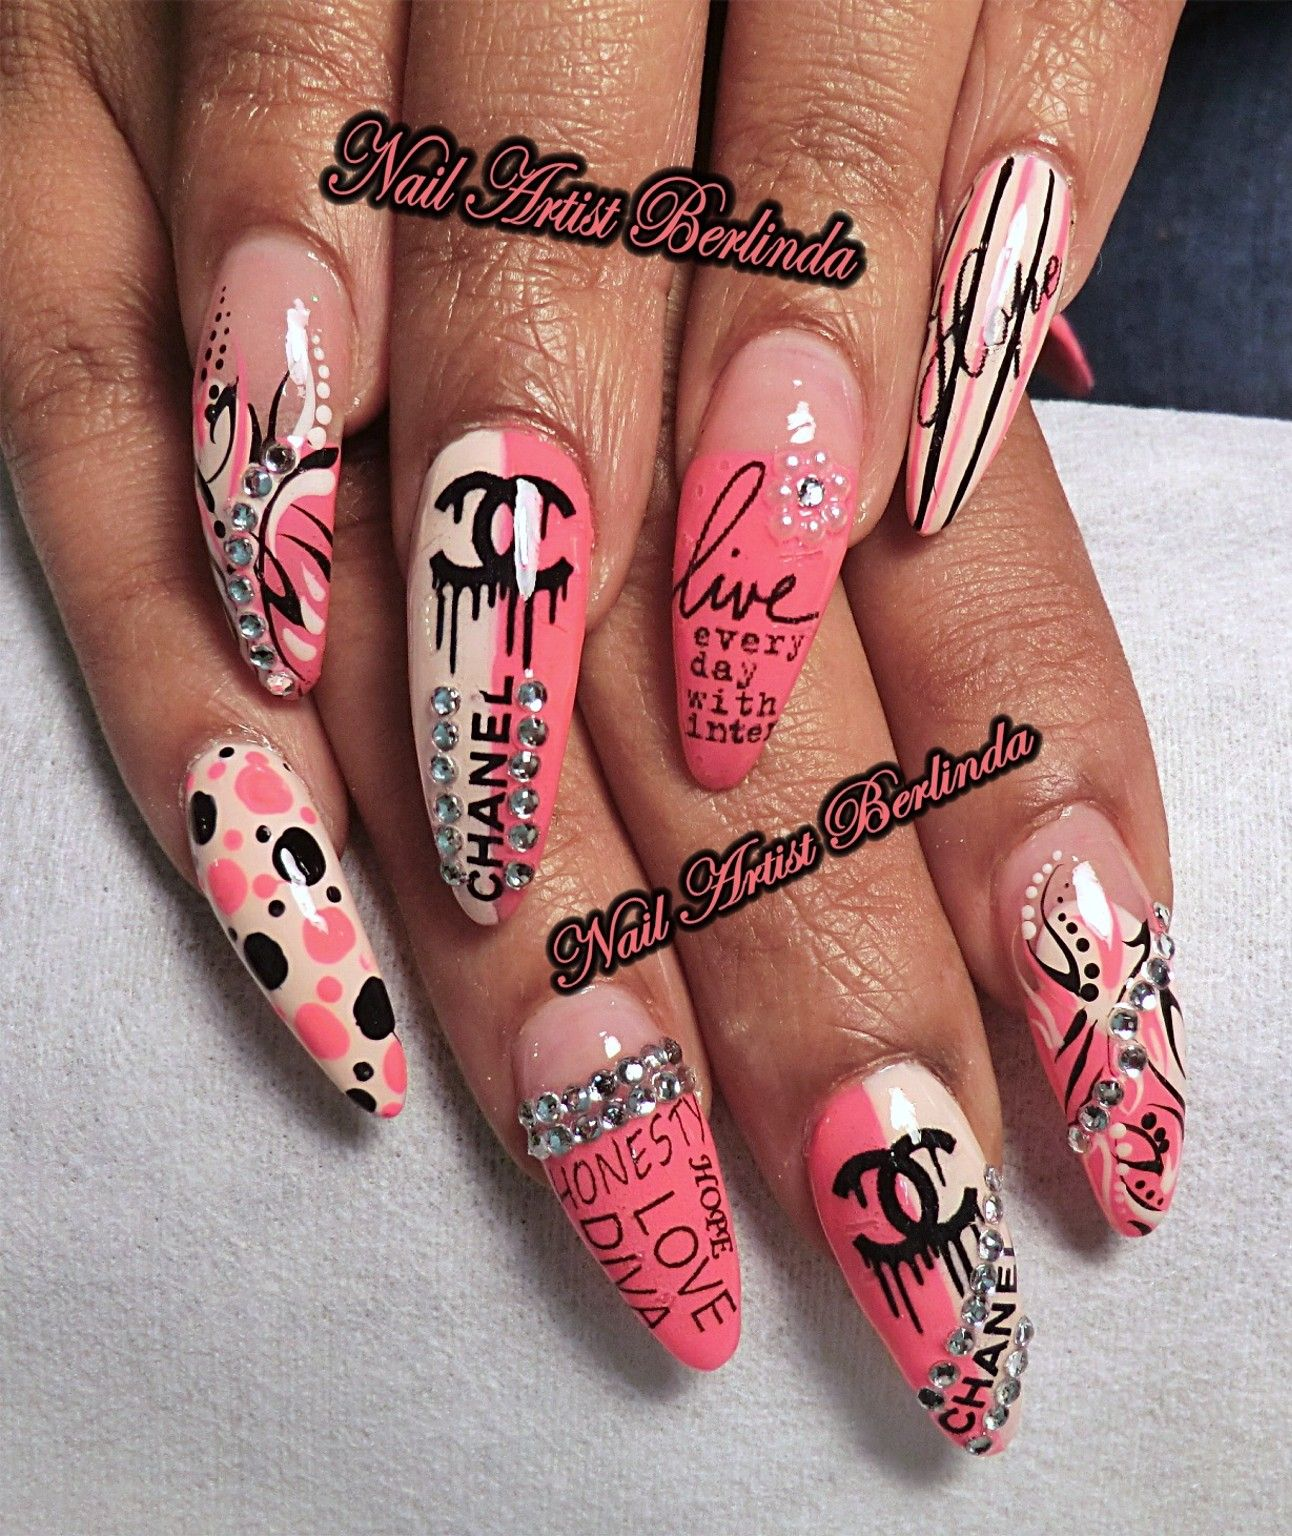 Dripping Chanel, Inspirational Words - www.nailartistberlinda.com ...